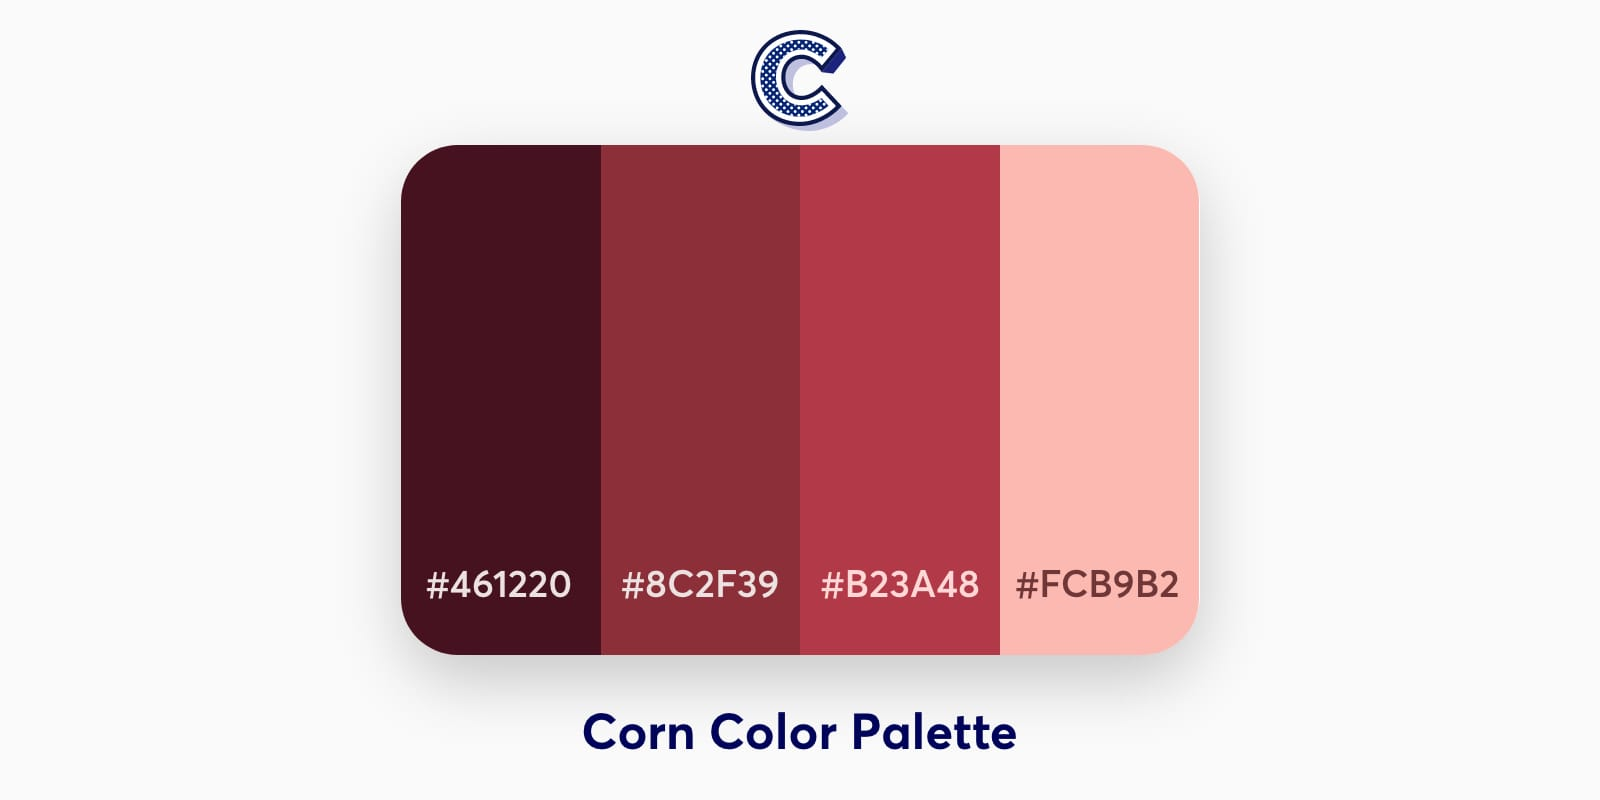 the feaured image of corn color palette